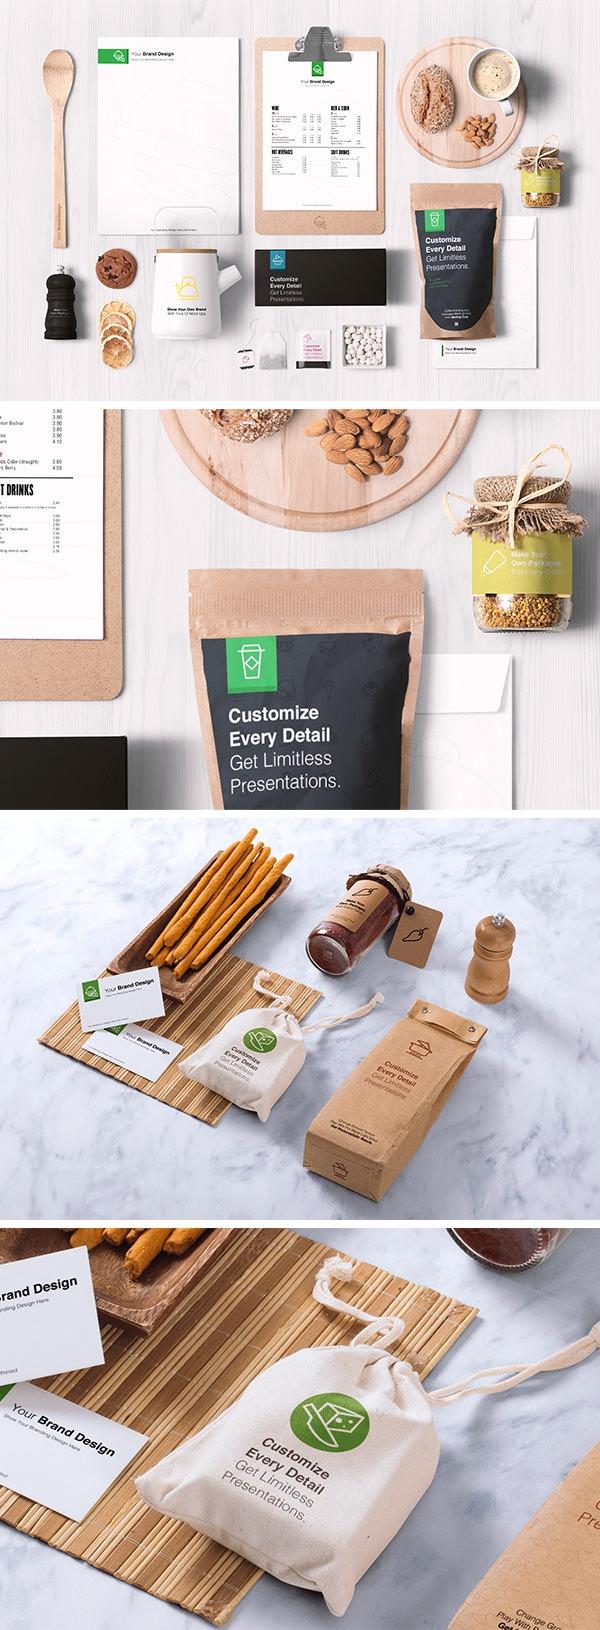 Download food packaging mockup